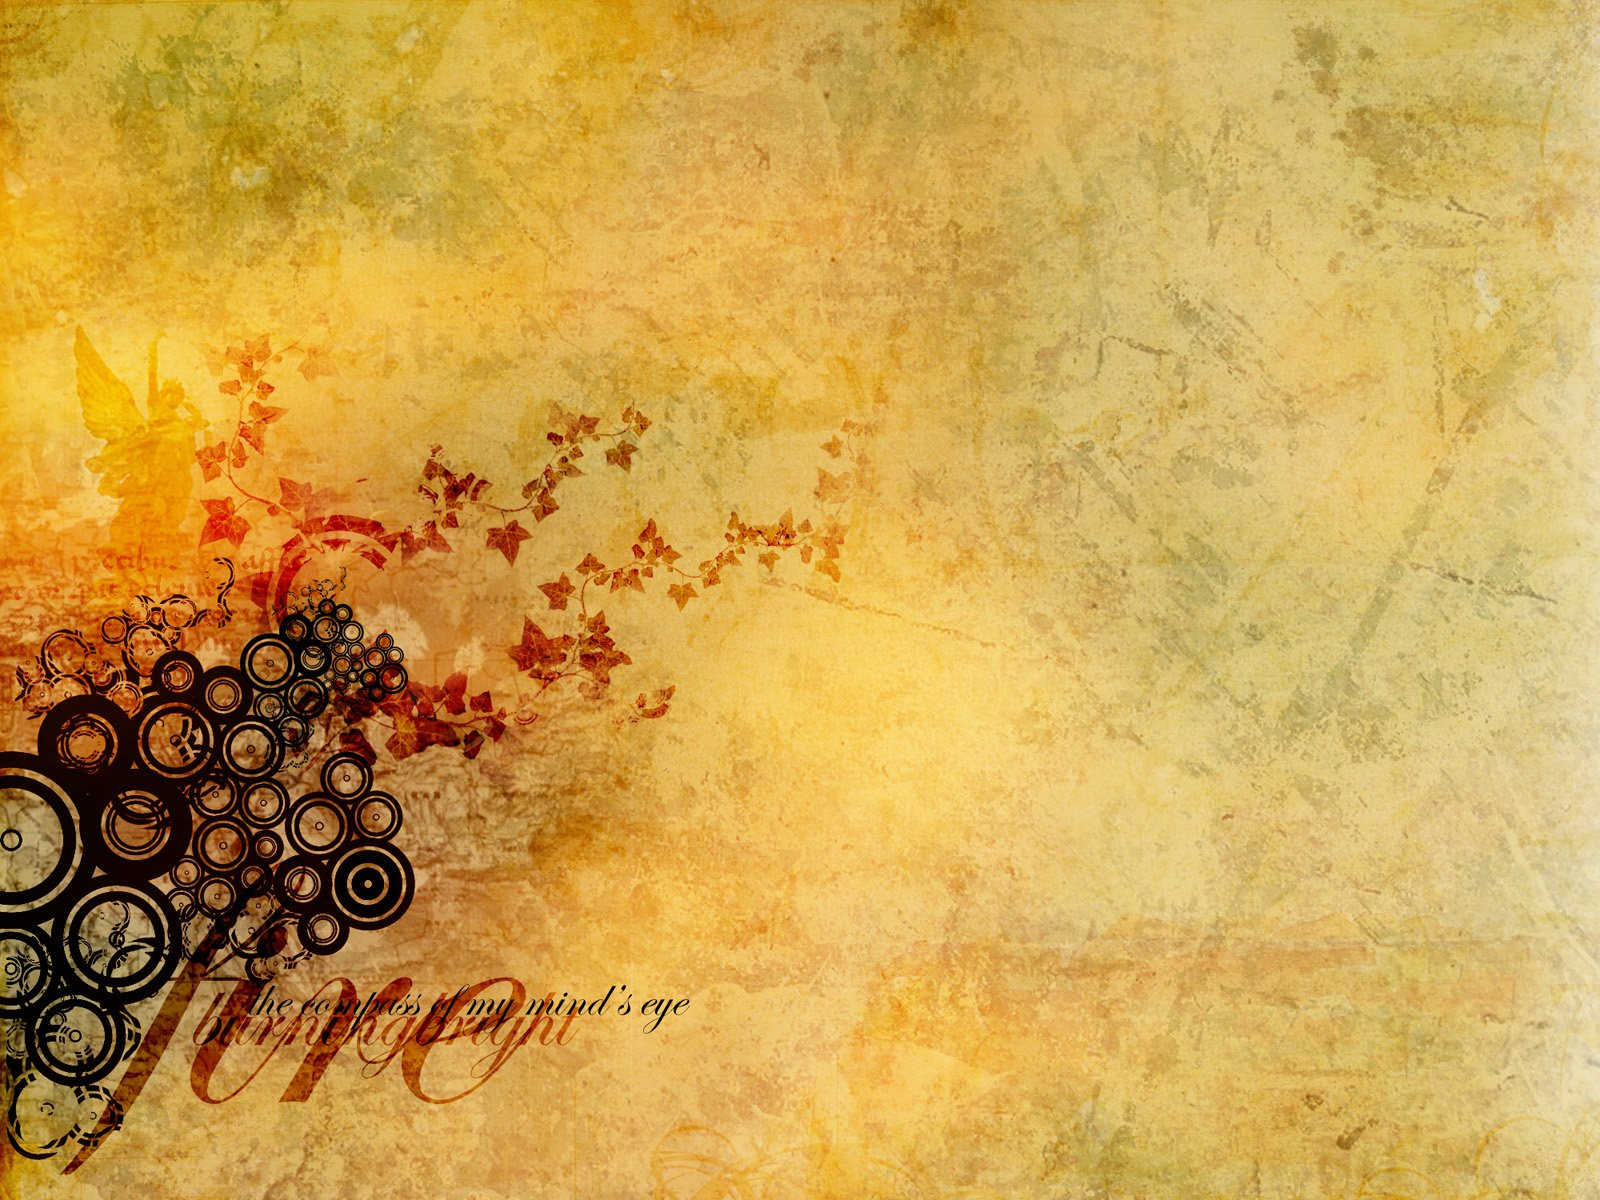 Wallpapers ID:15319